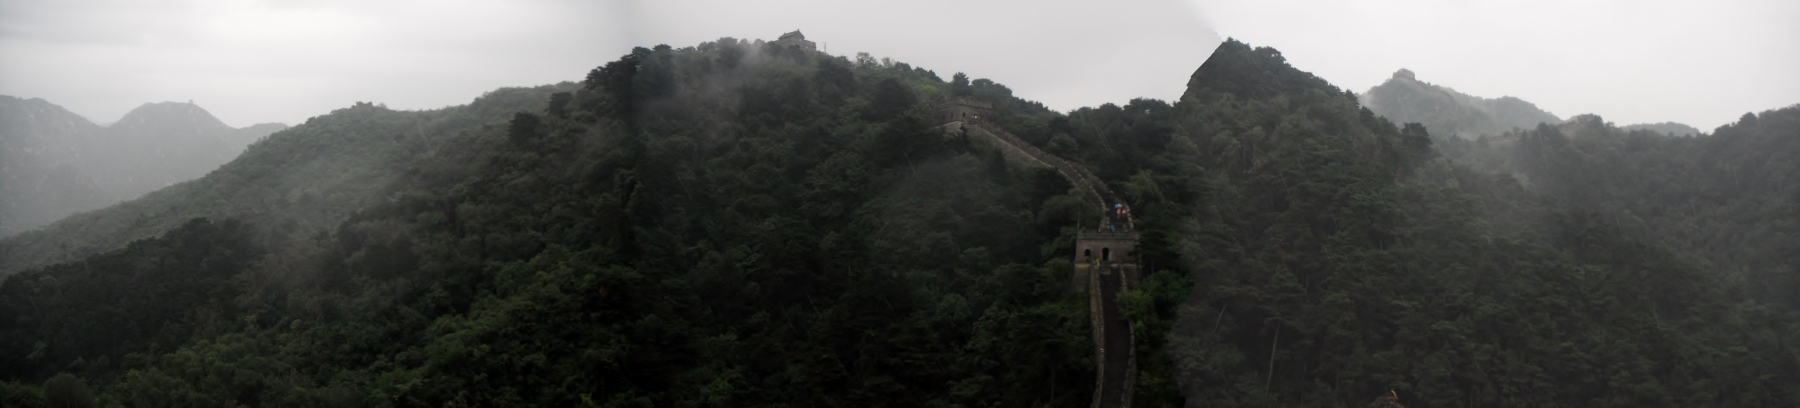 panoramic view around the Great Wall of China in Mutianyu